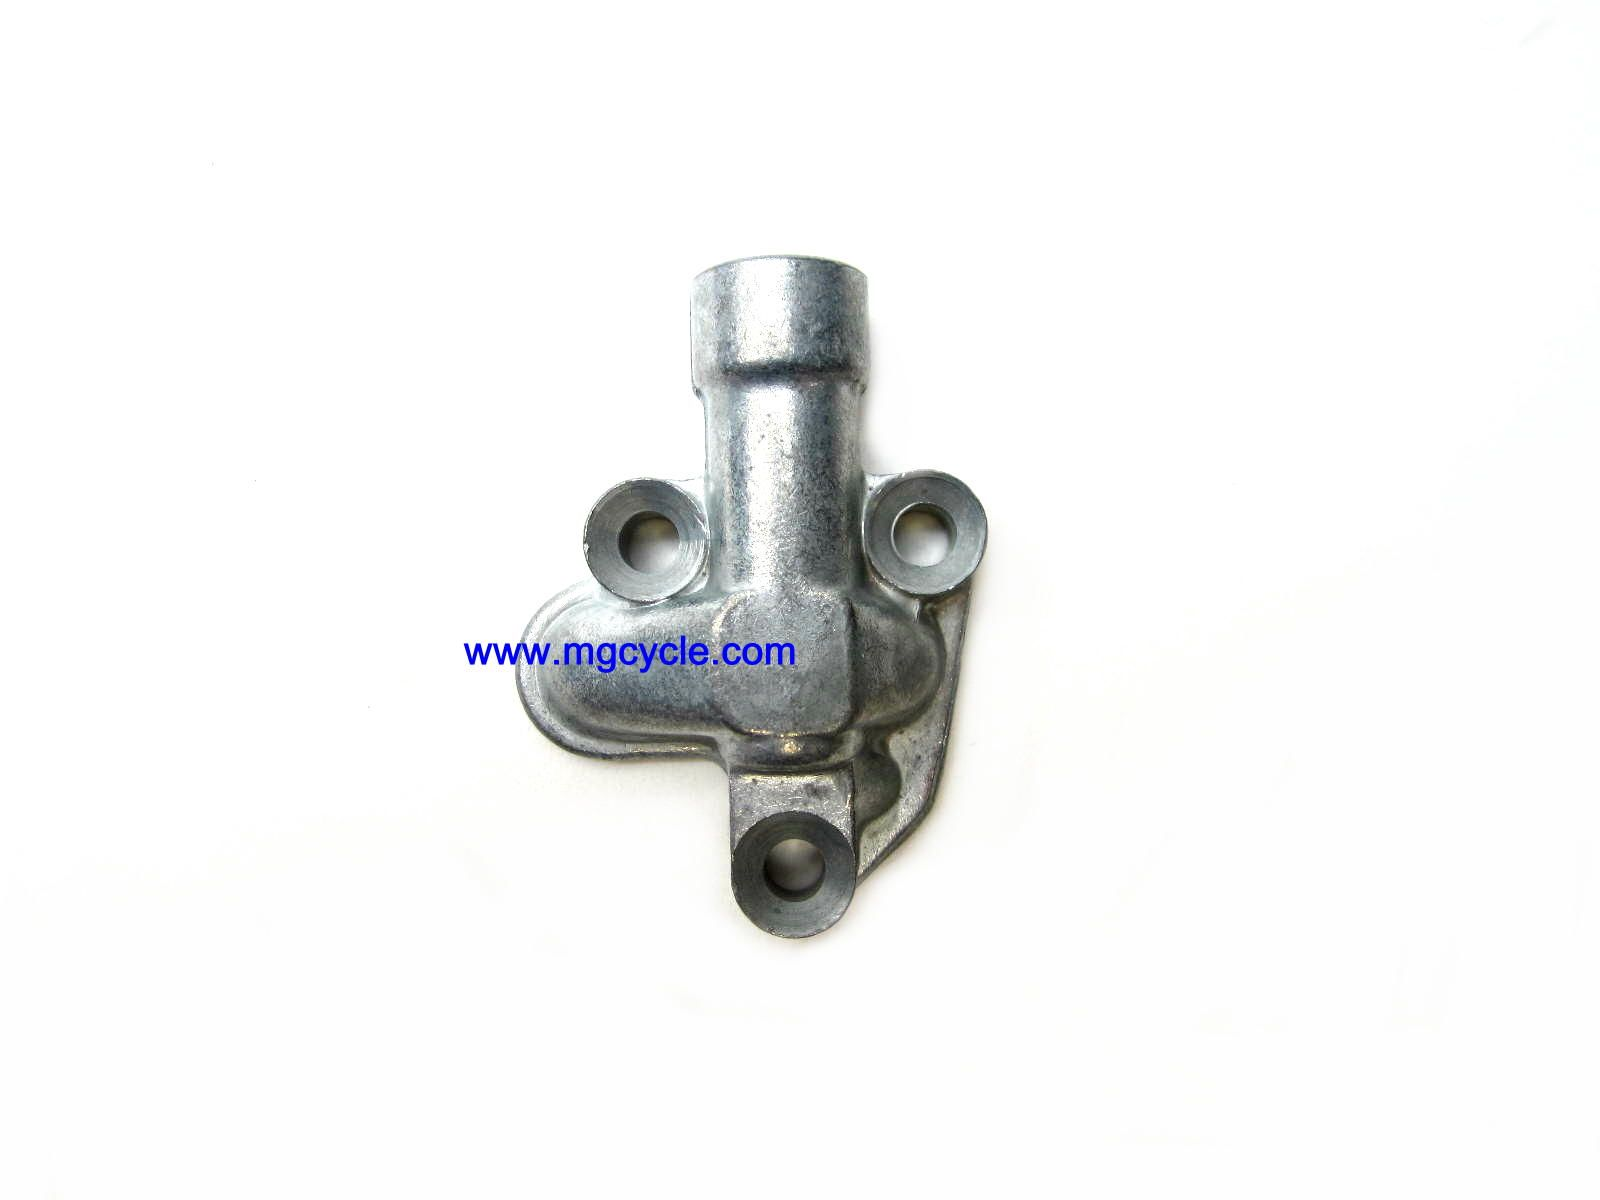 Dellorto 8887 choke assembly housing PHM carbs